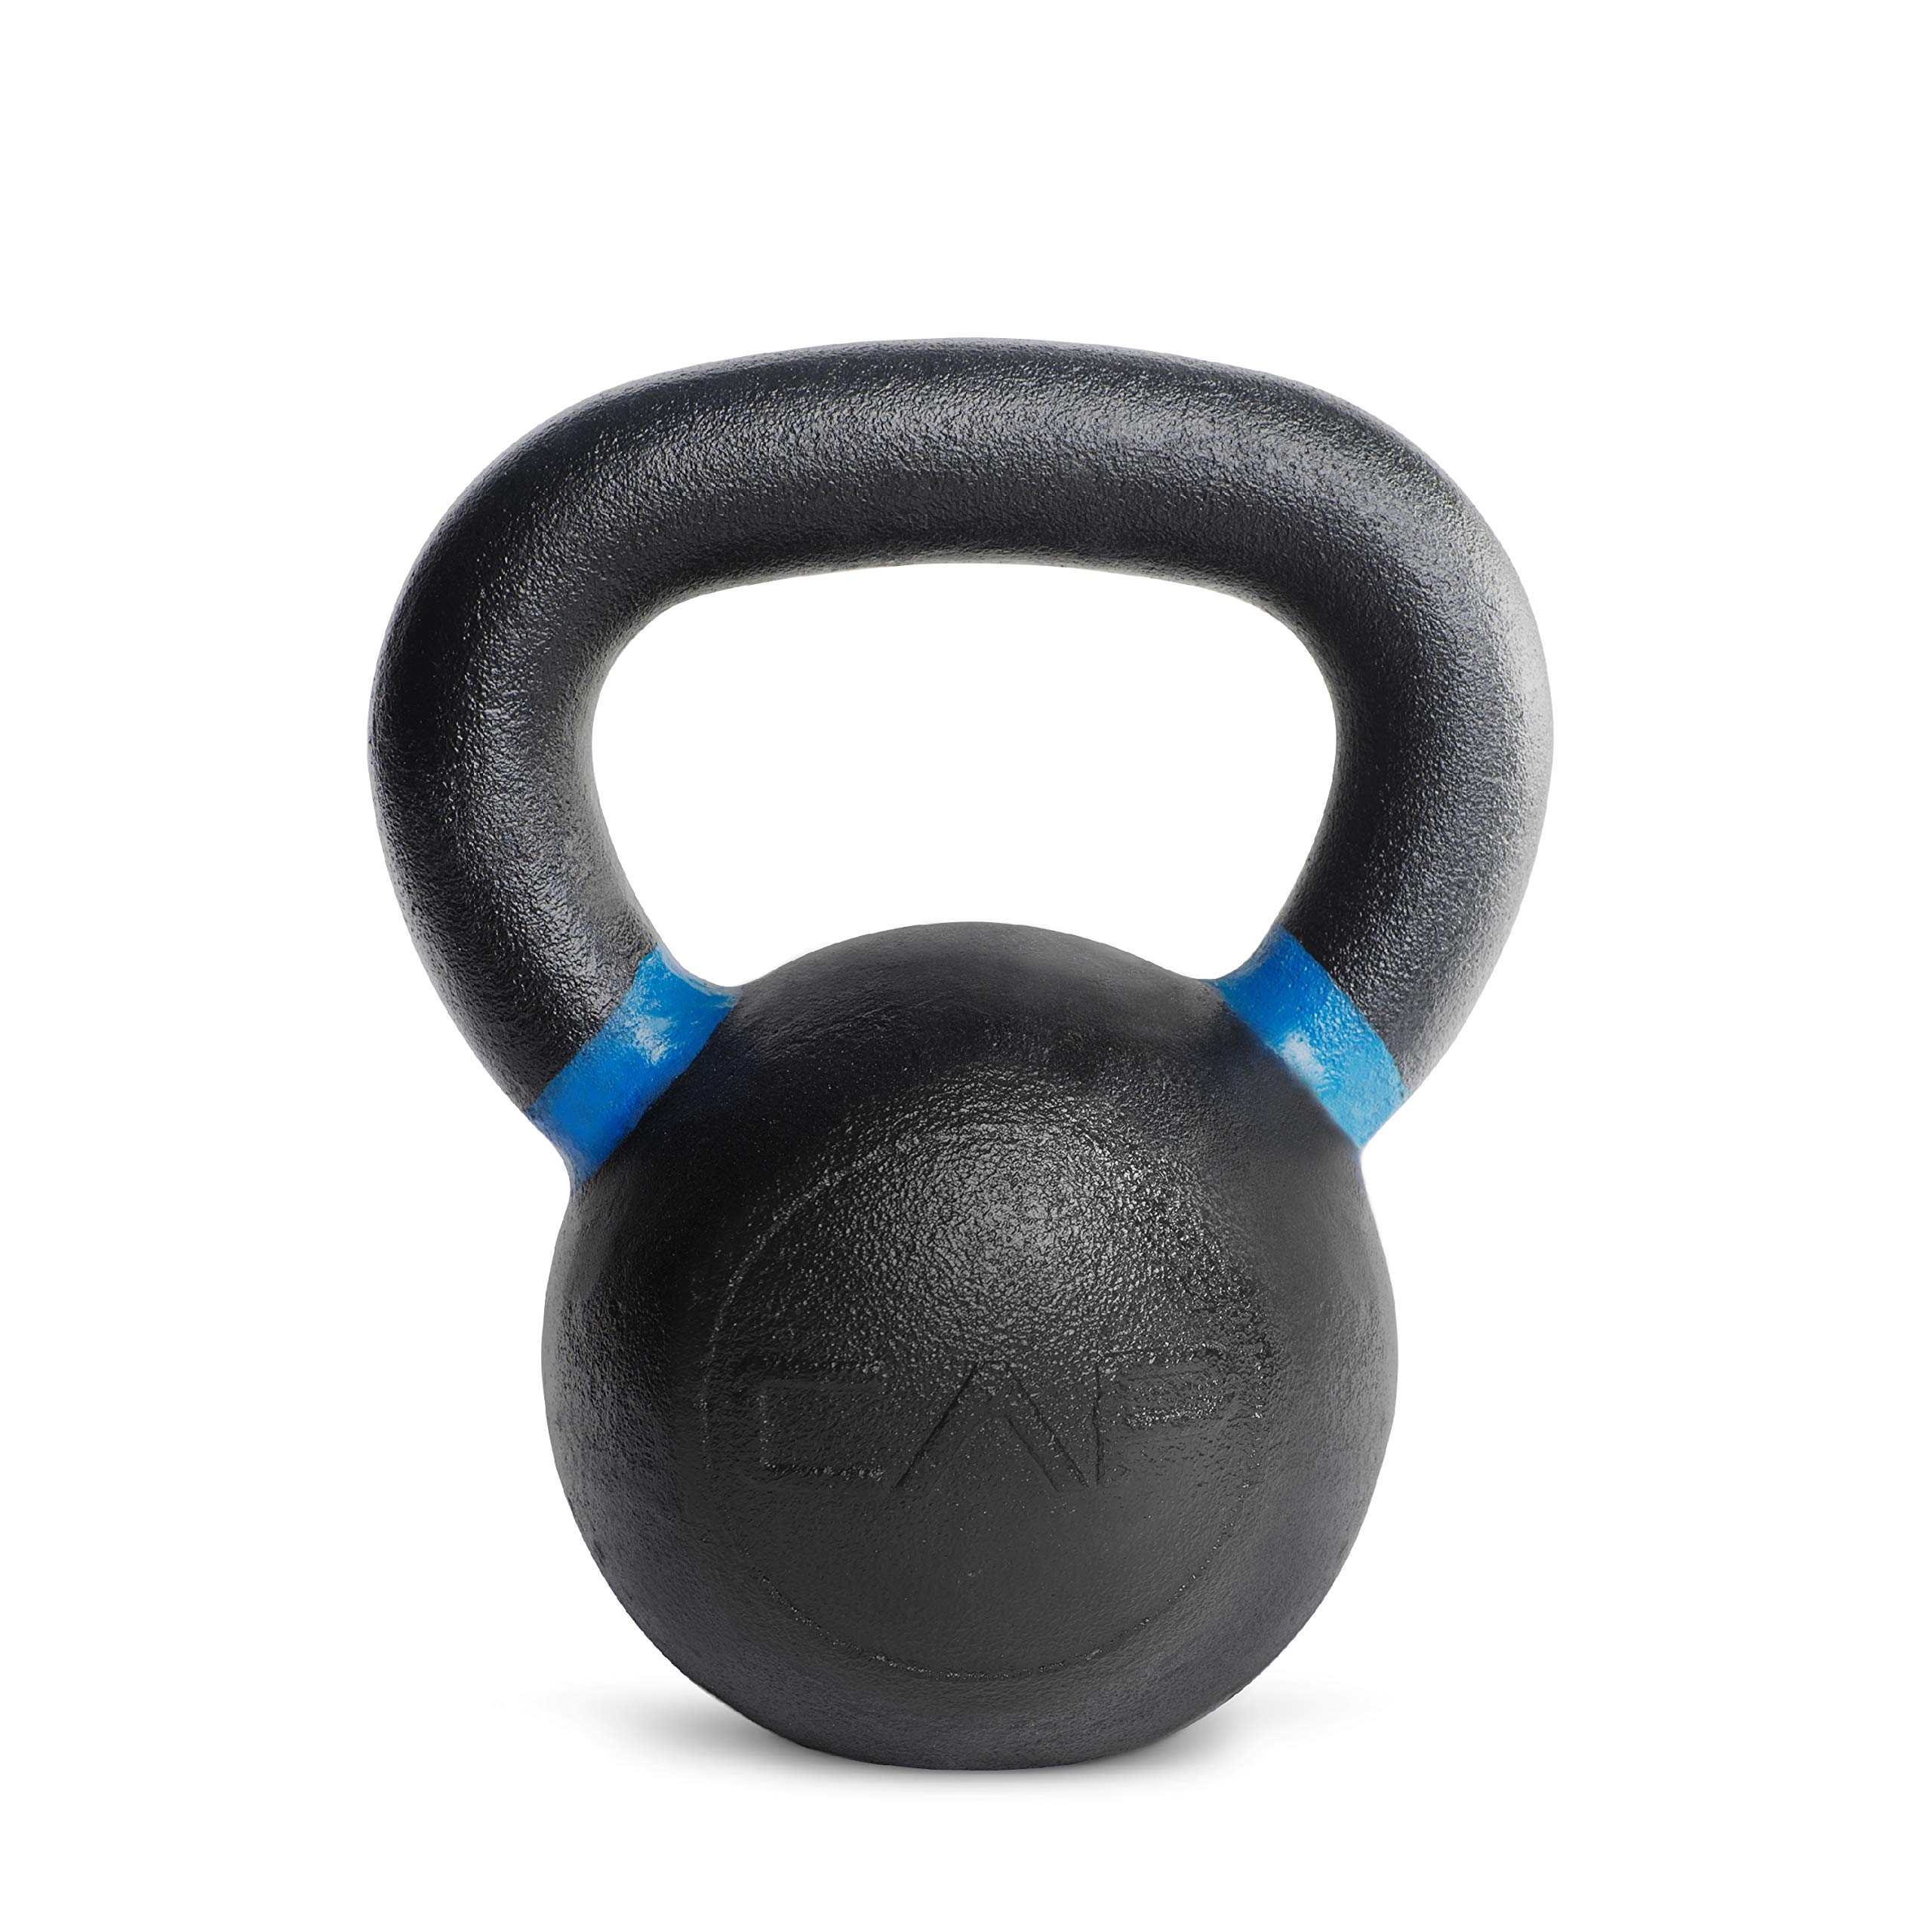 CAP Barbell Cast Iron Competition Kettlebell Weight, 26 Pound, Black/Blue